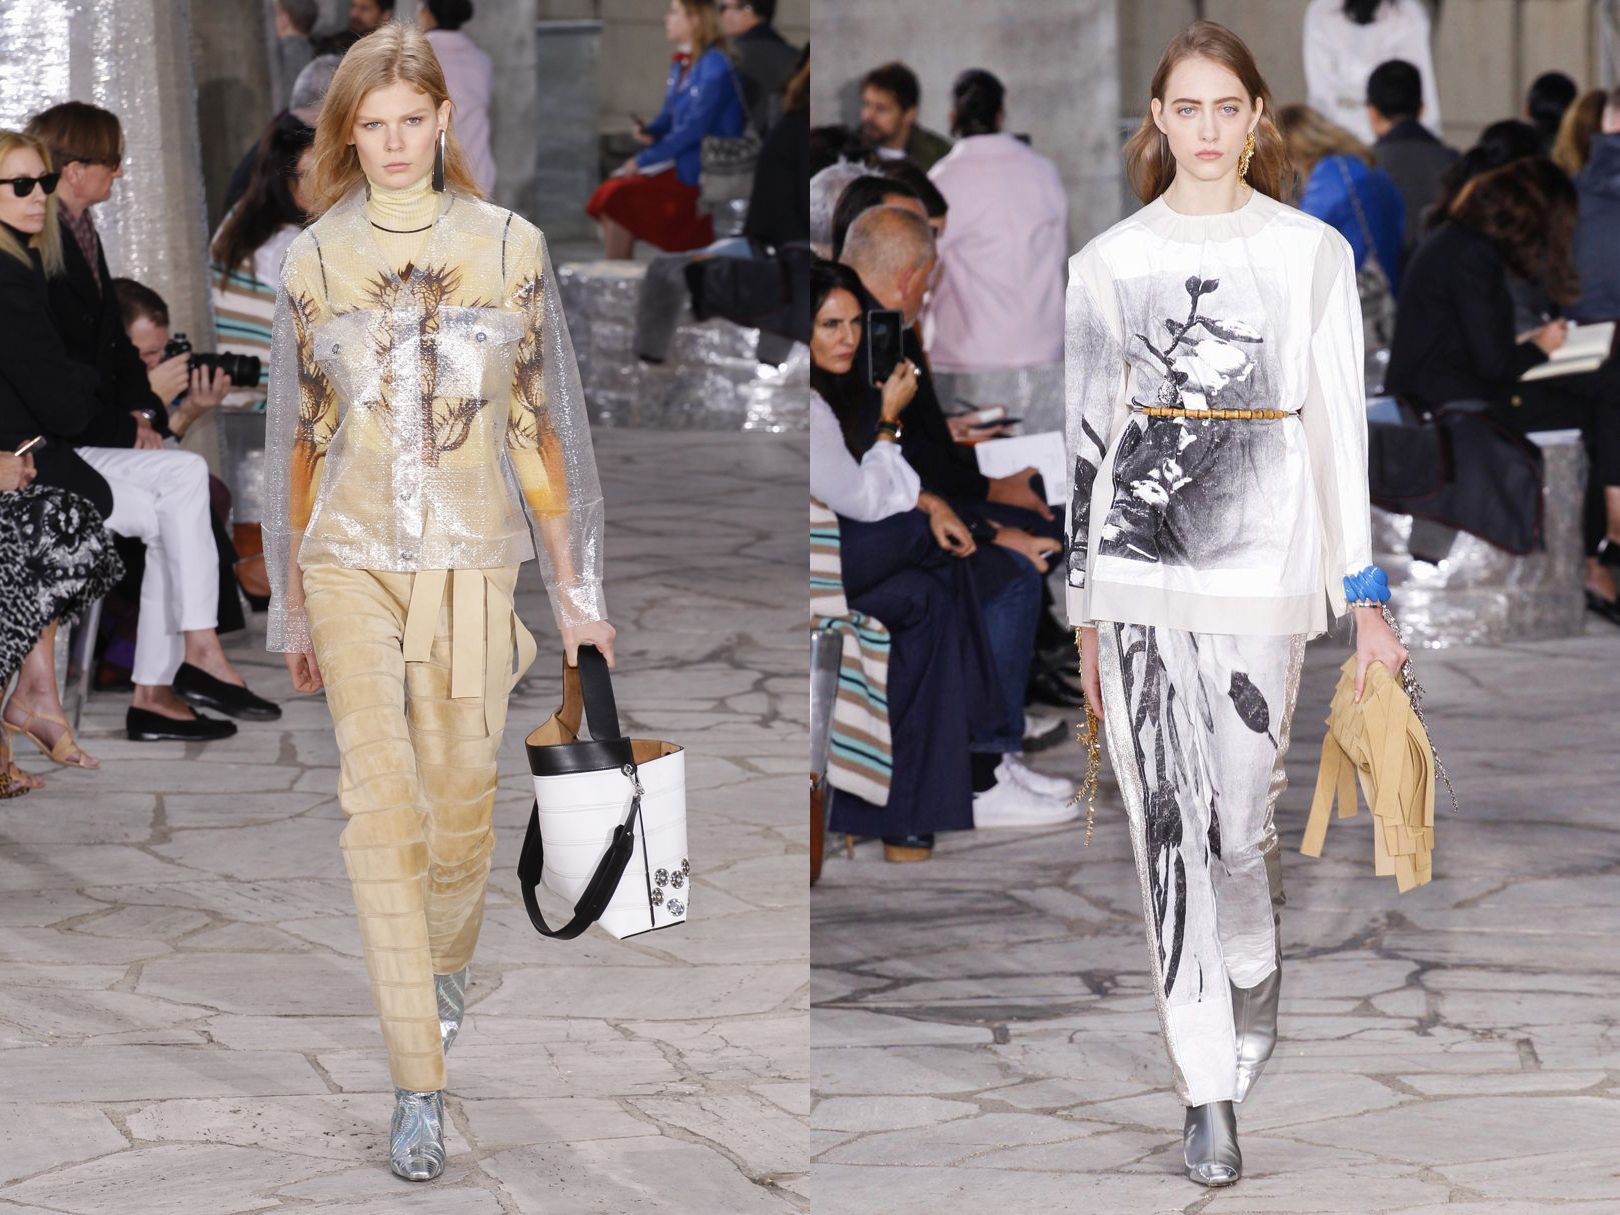 Looks from LOEWE's SS16 show.